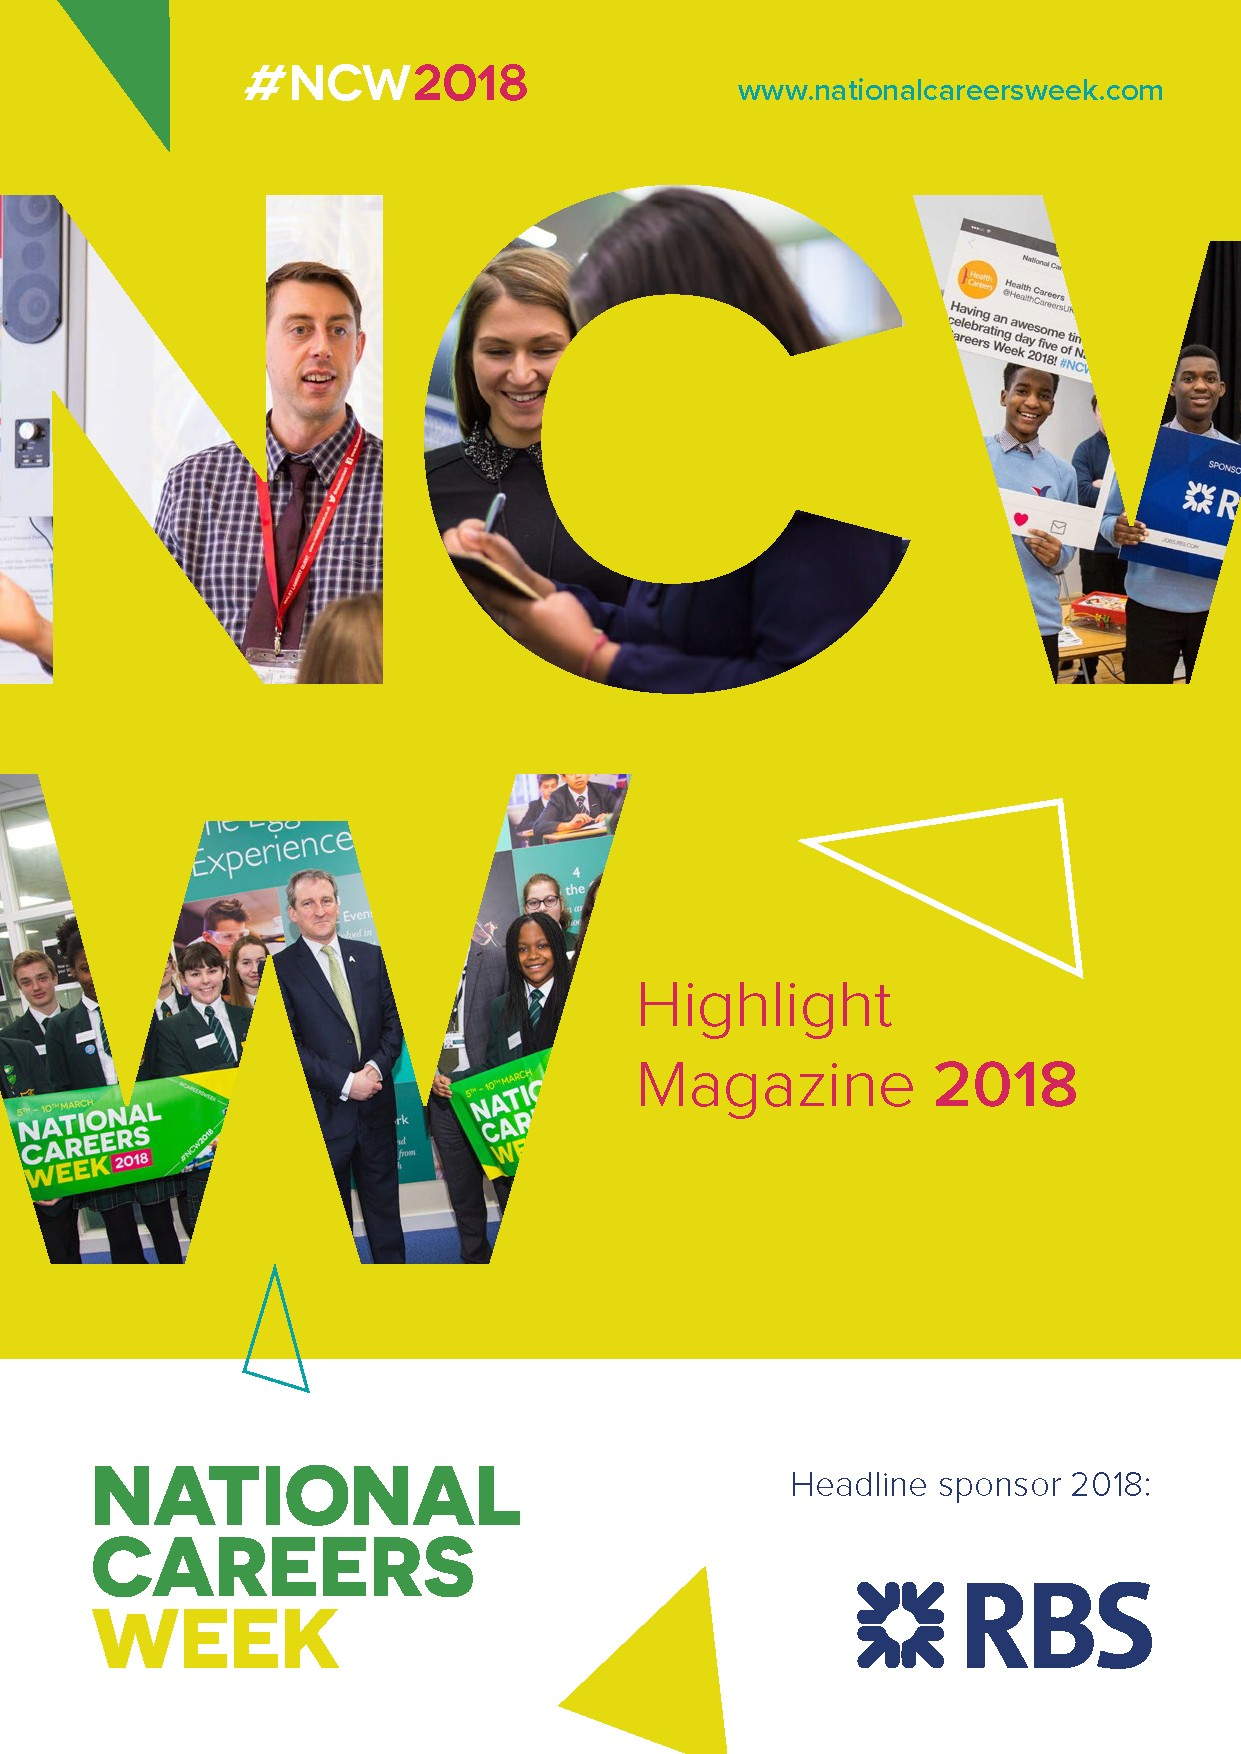 National Day Calendar March Más Recientes New Ncw Homepage National Careers Week Of National Day Calendar March Recientes National Food Days today Holiday Foods Calendar 2019